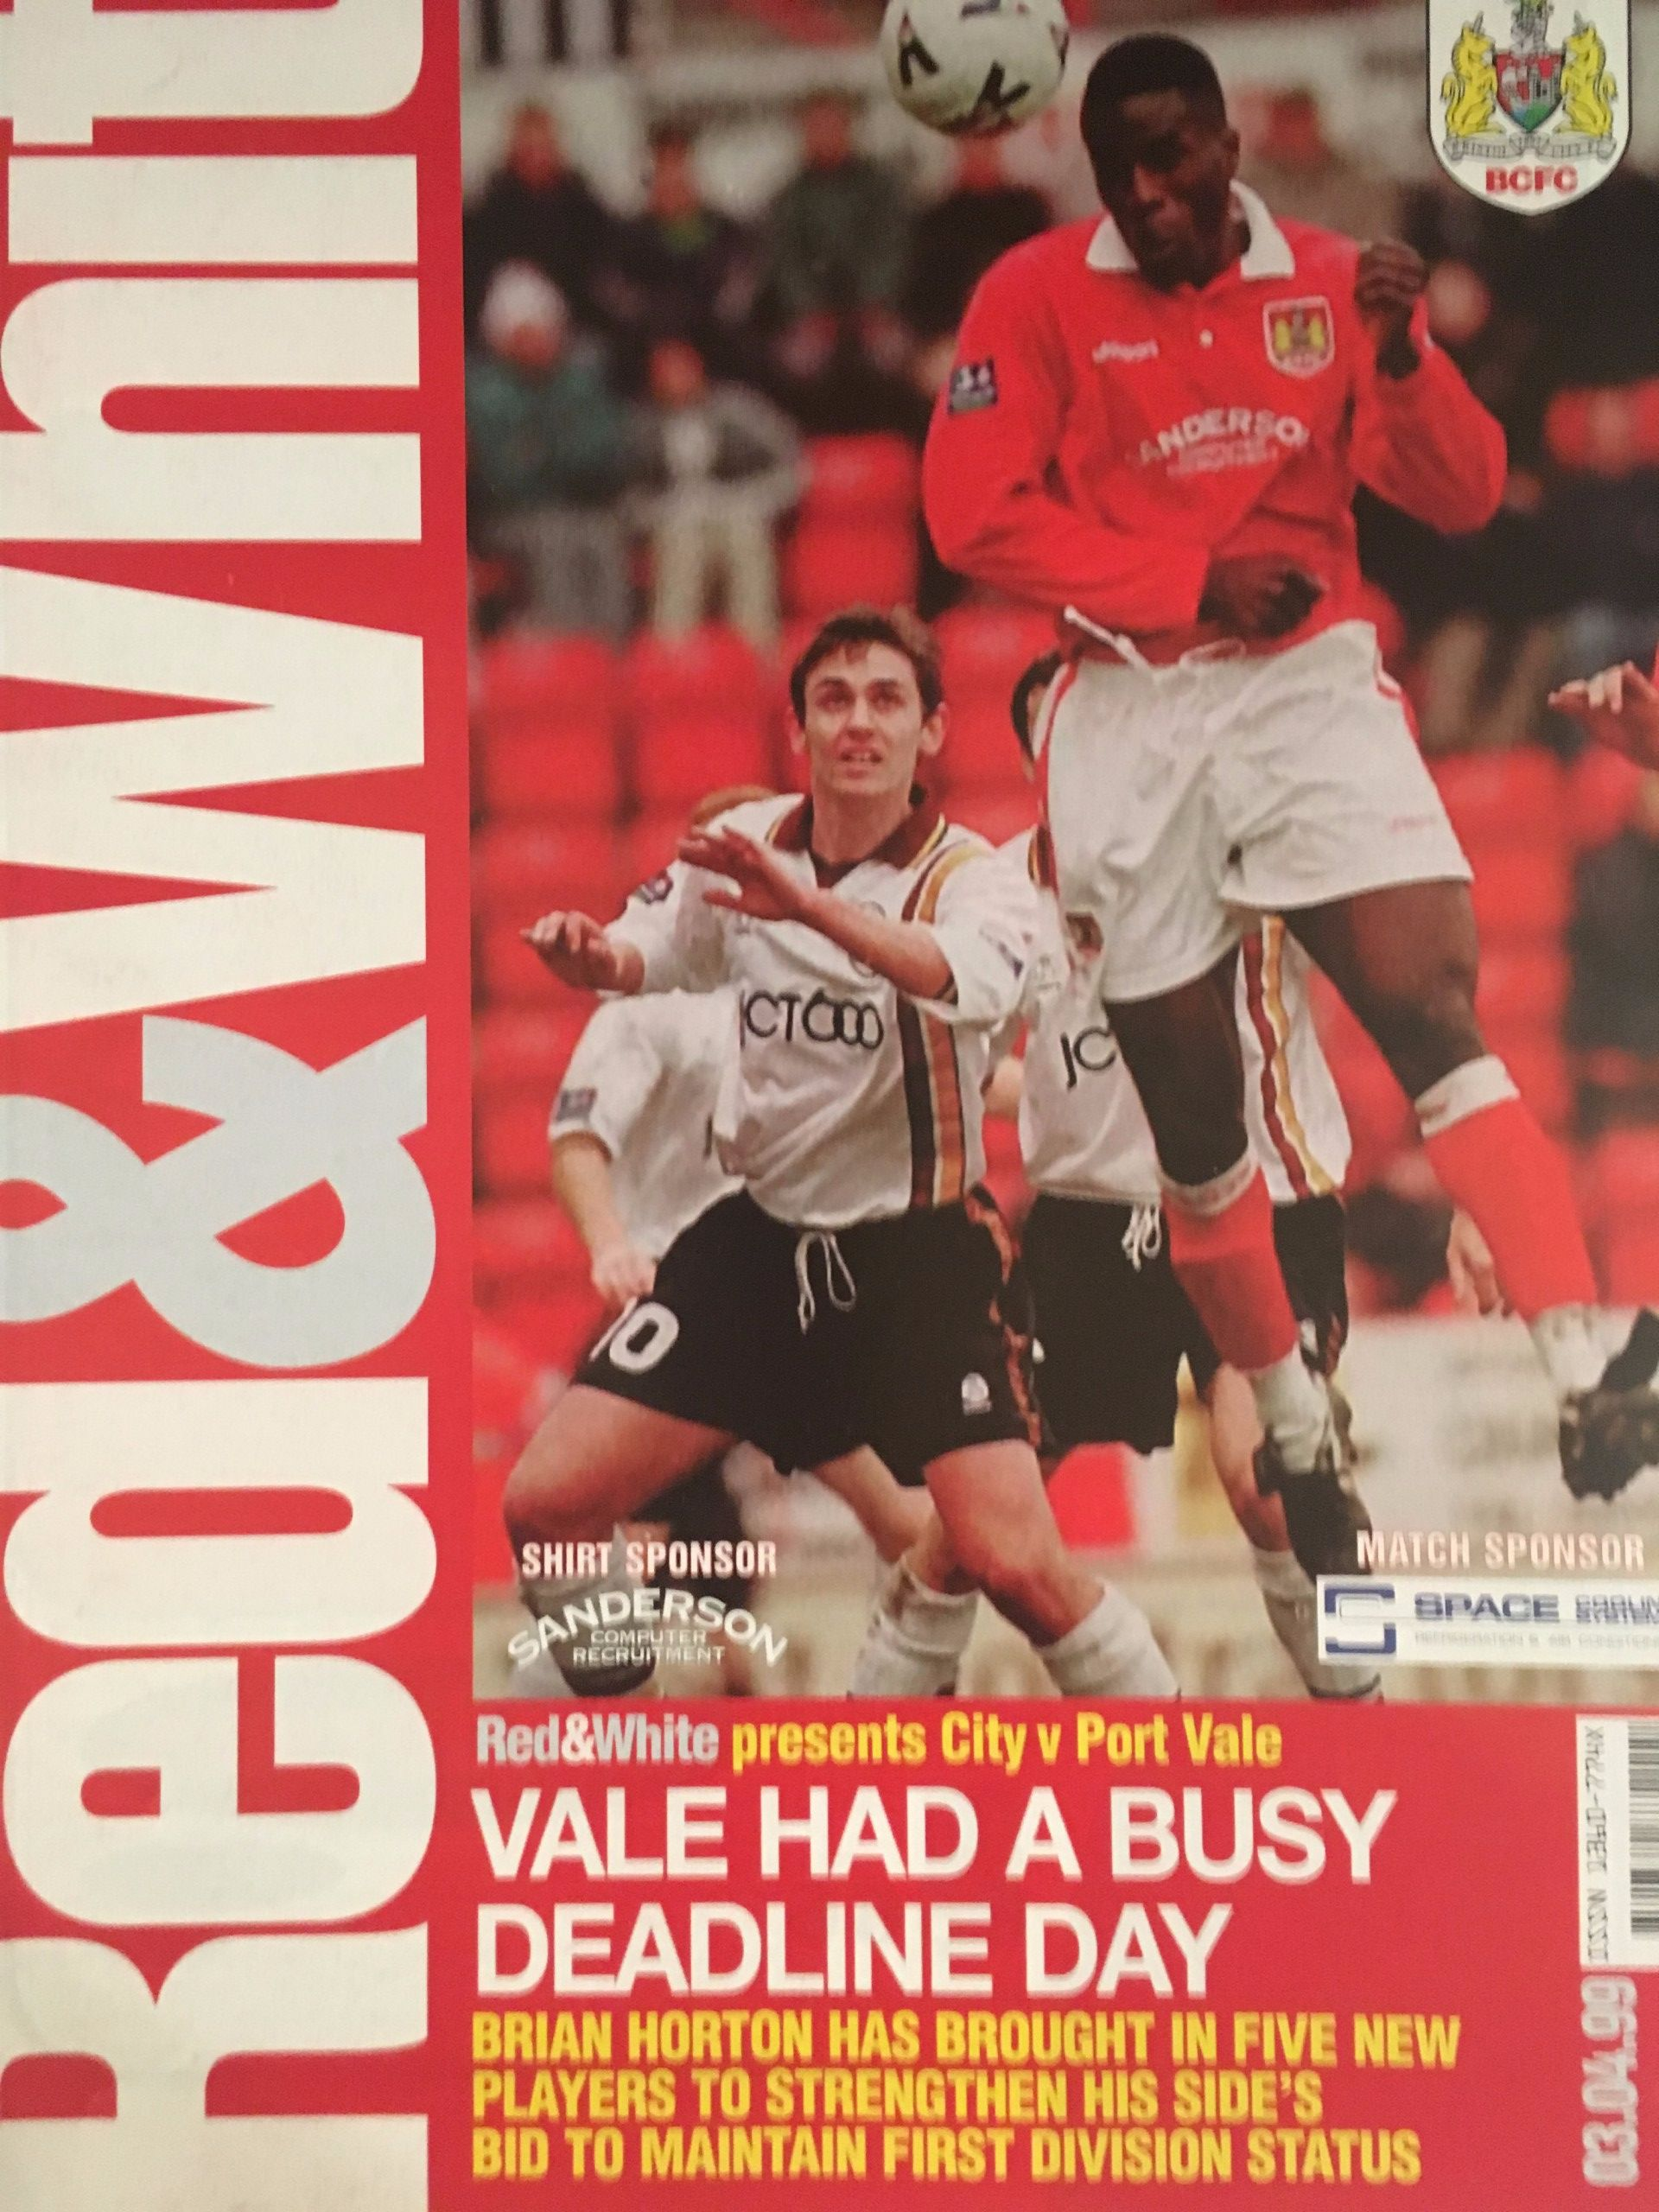 Bristol City v Port Vale 03-04-1999 Programme